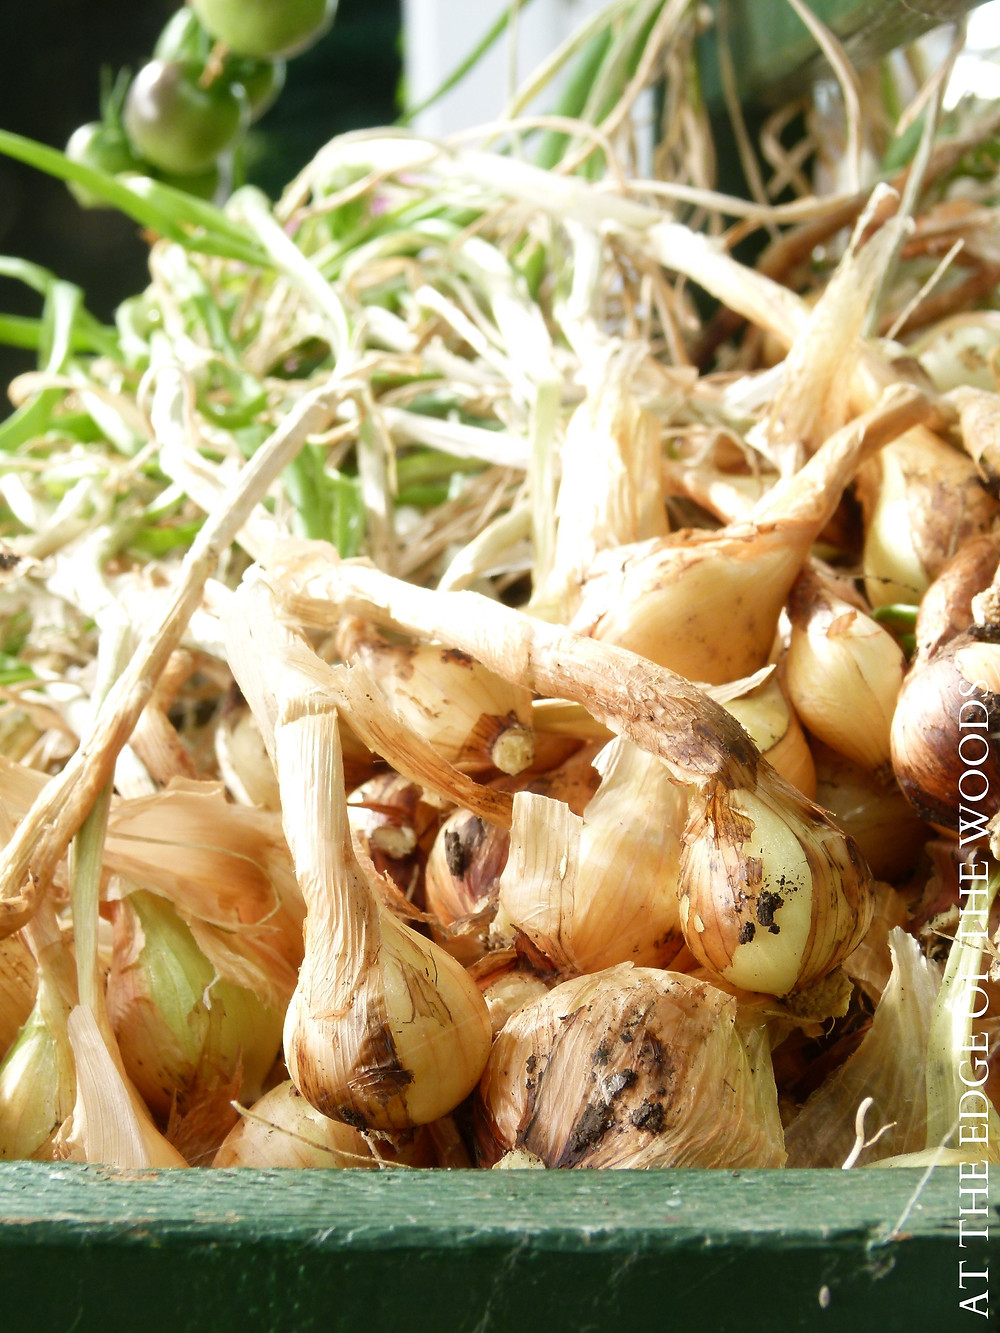 Dutch Yellow Shallots that have just been pulled out of the greenhouse beds